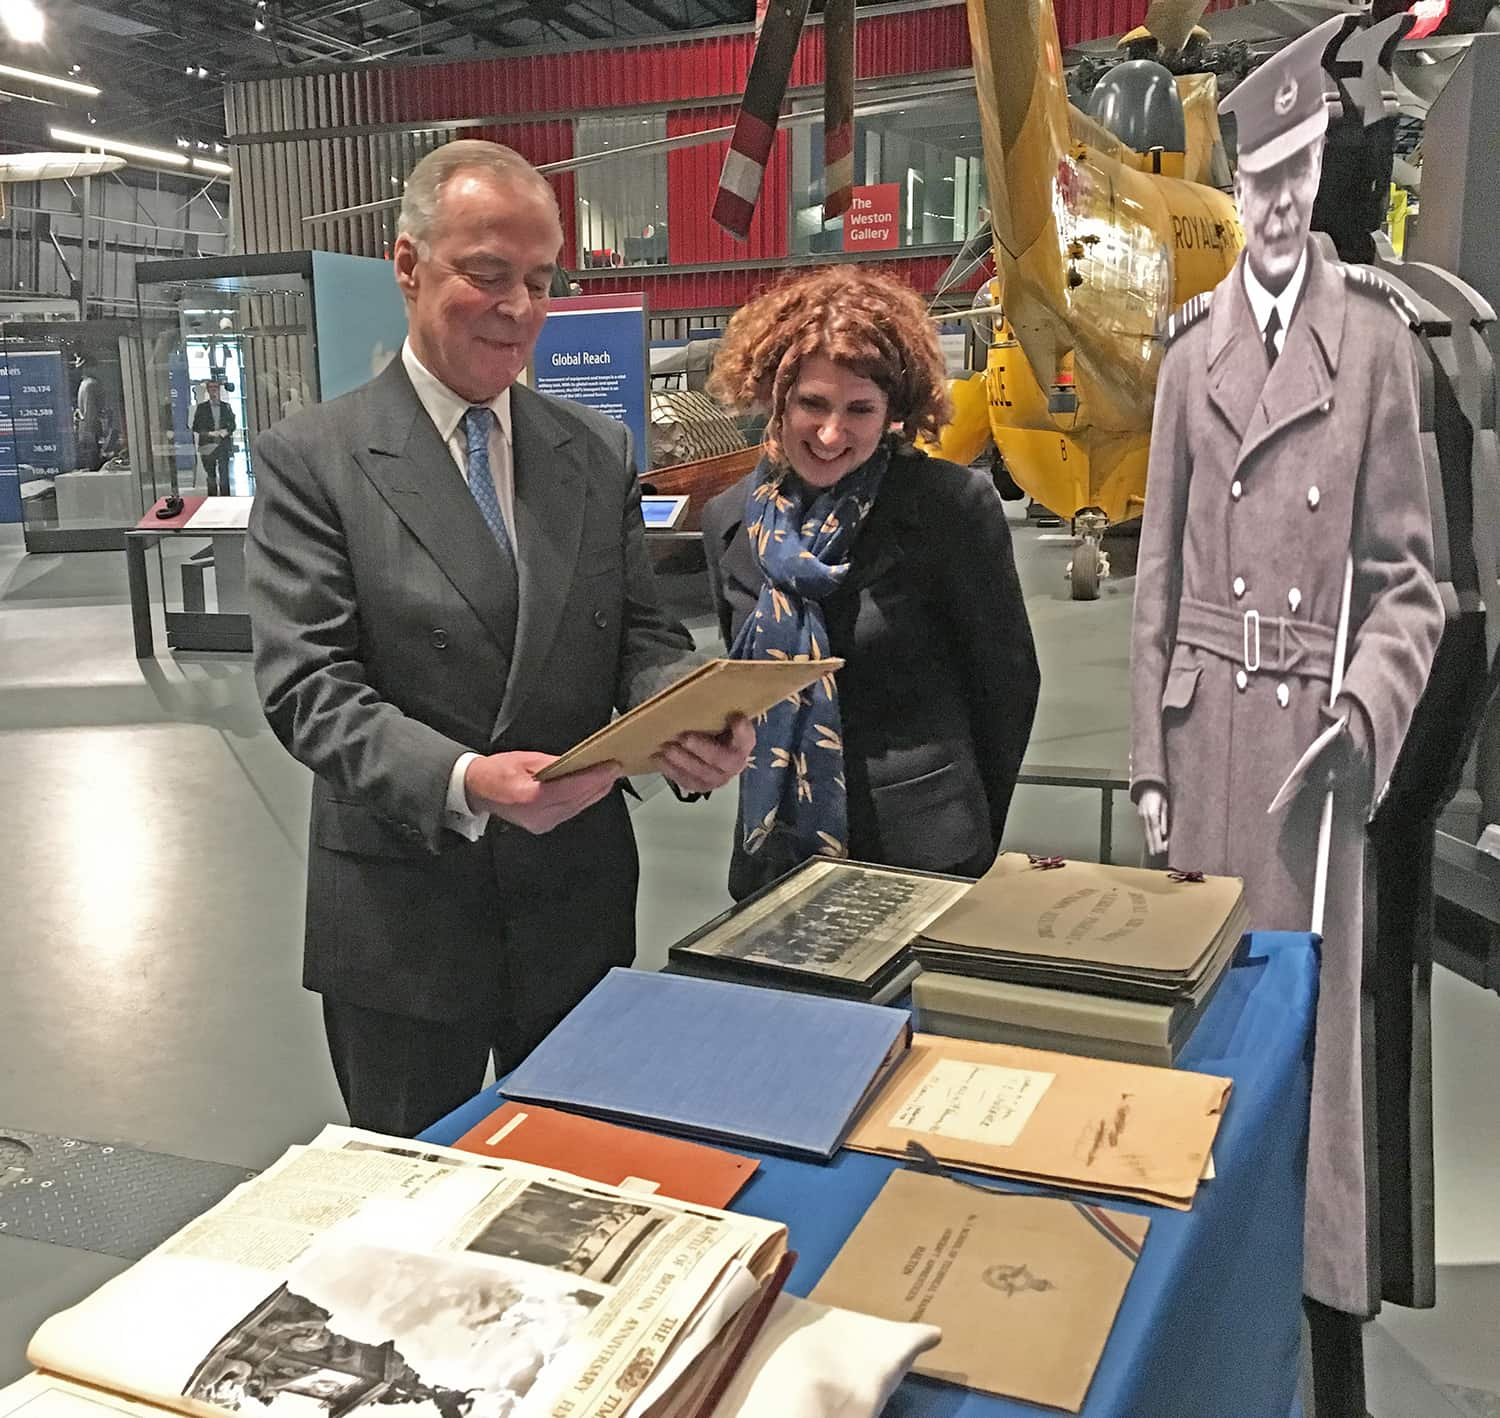 Lord Trenchard and Maggie Appleton, CEO RAF Museum at the Royal Air Force Museum, London.